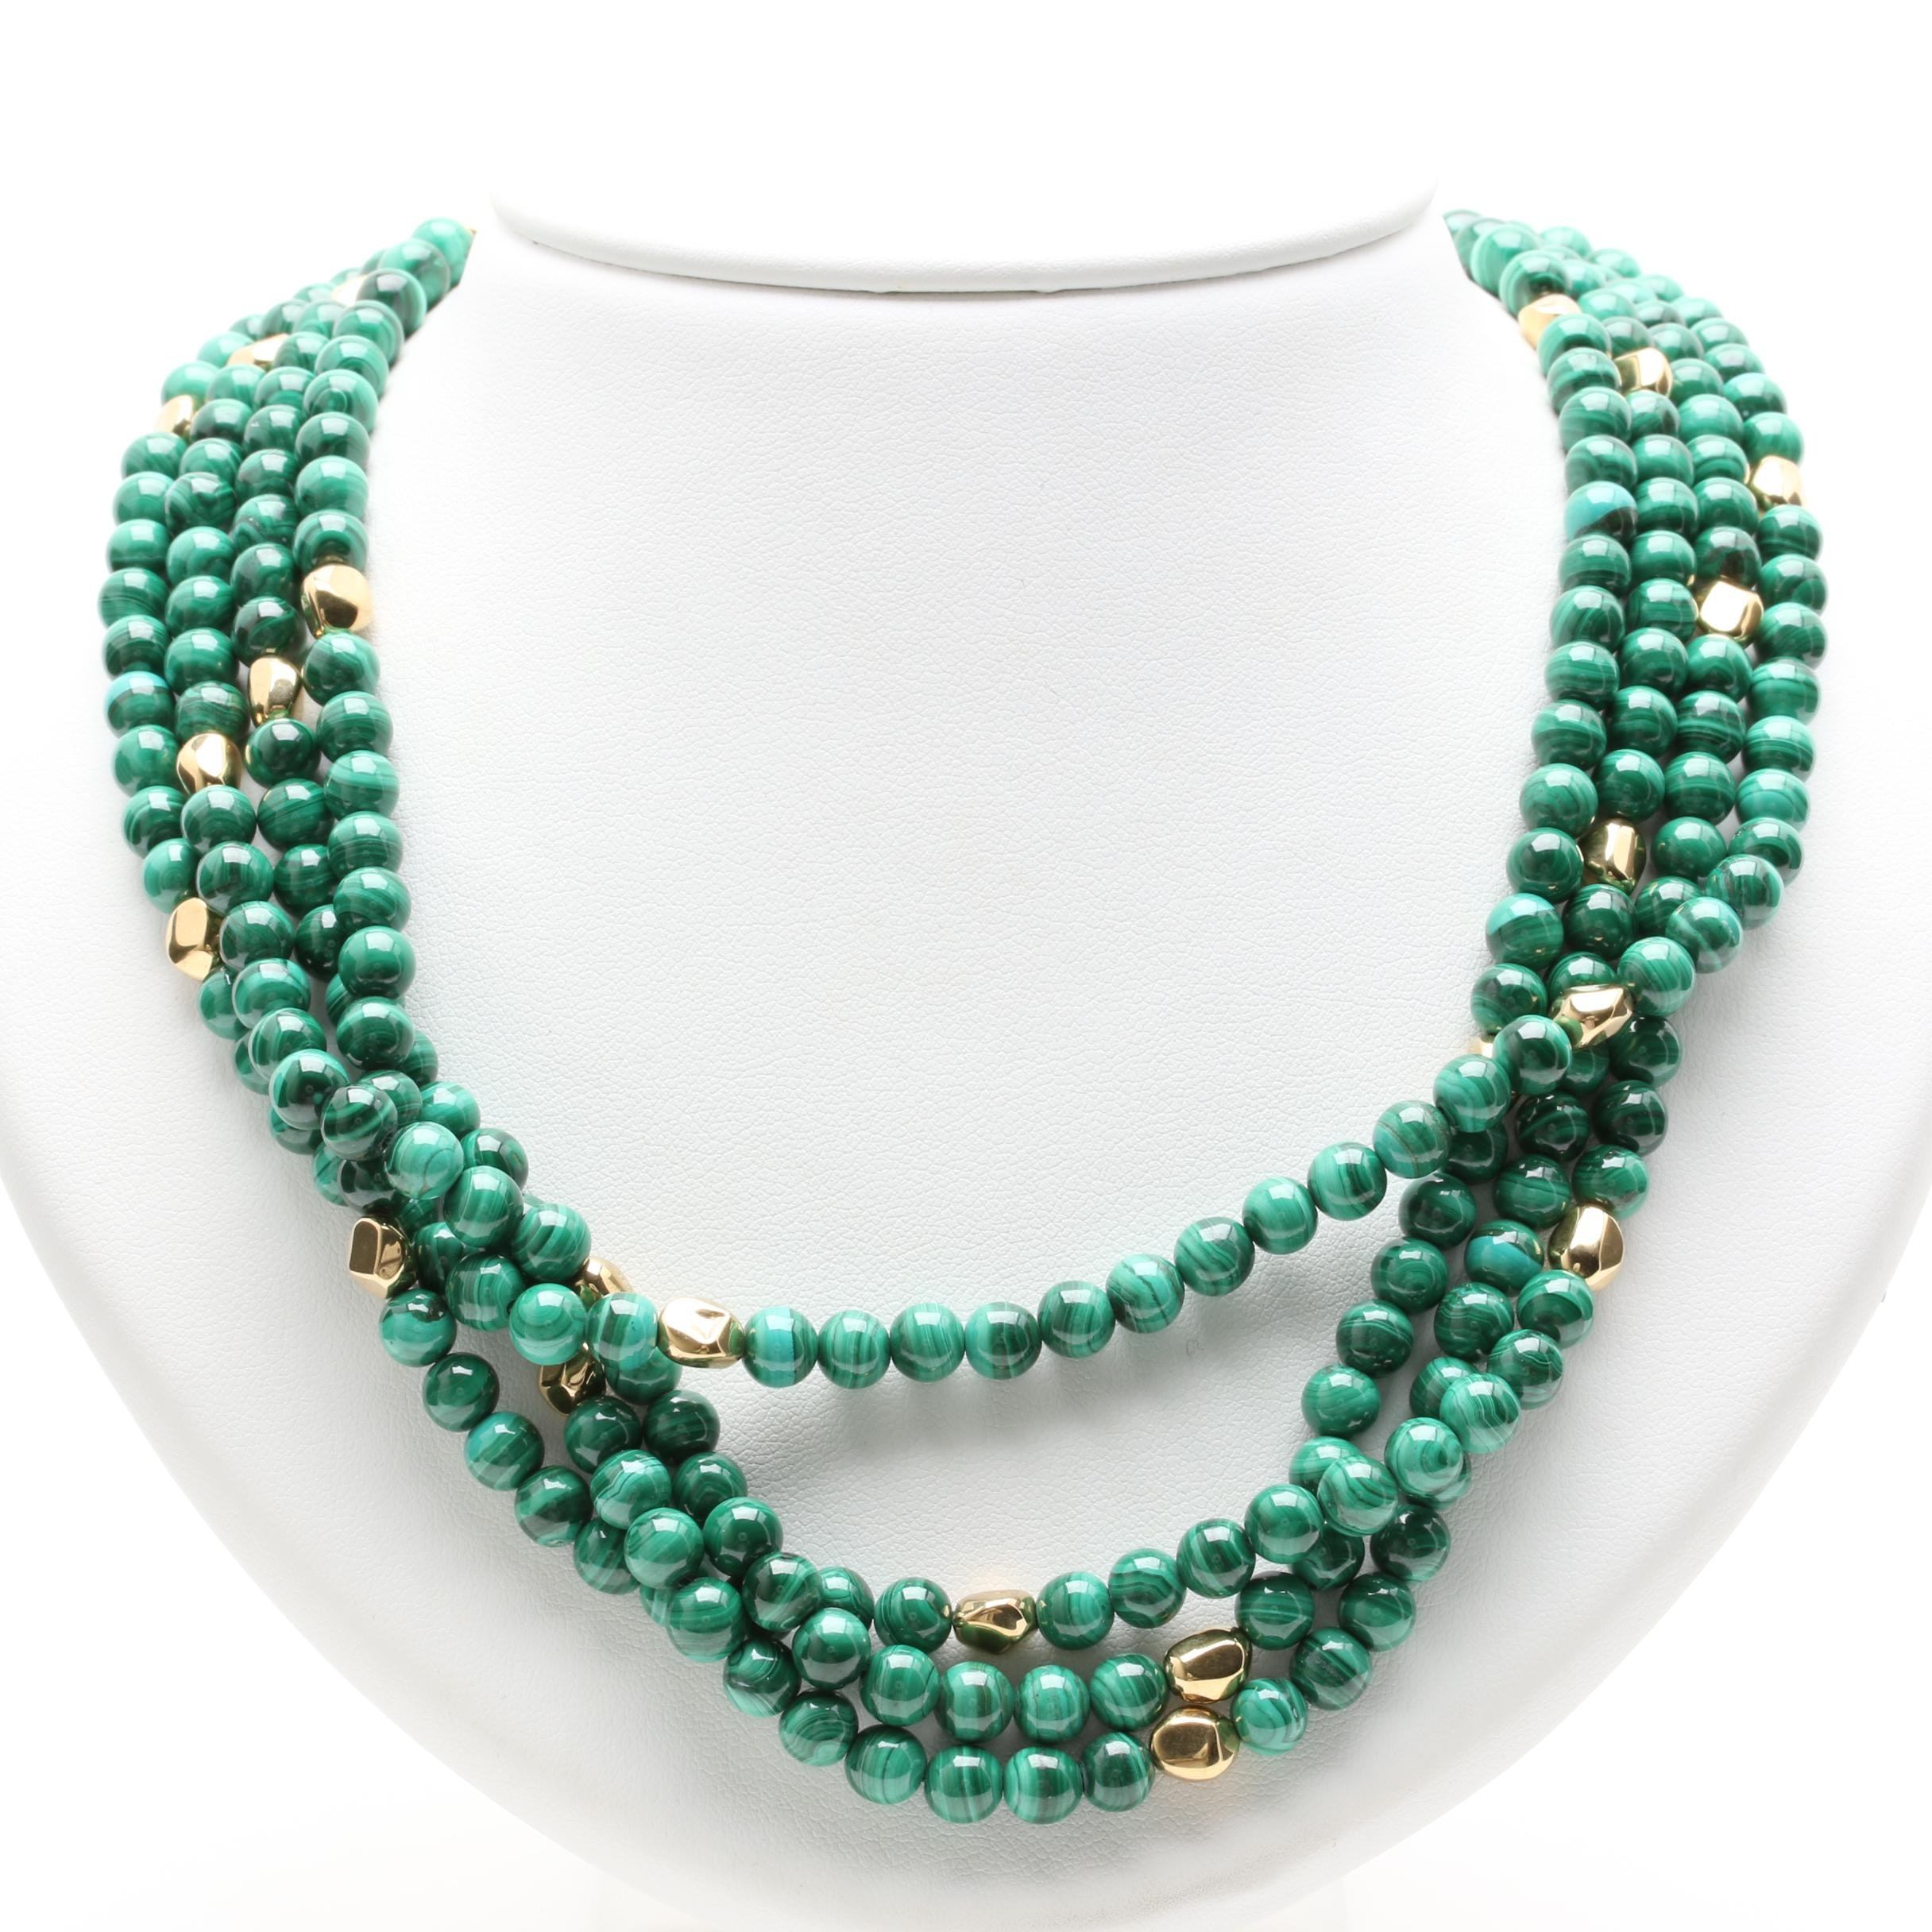 14K and 18K Yellow Gold Malachite Necklace